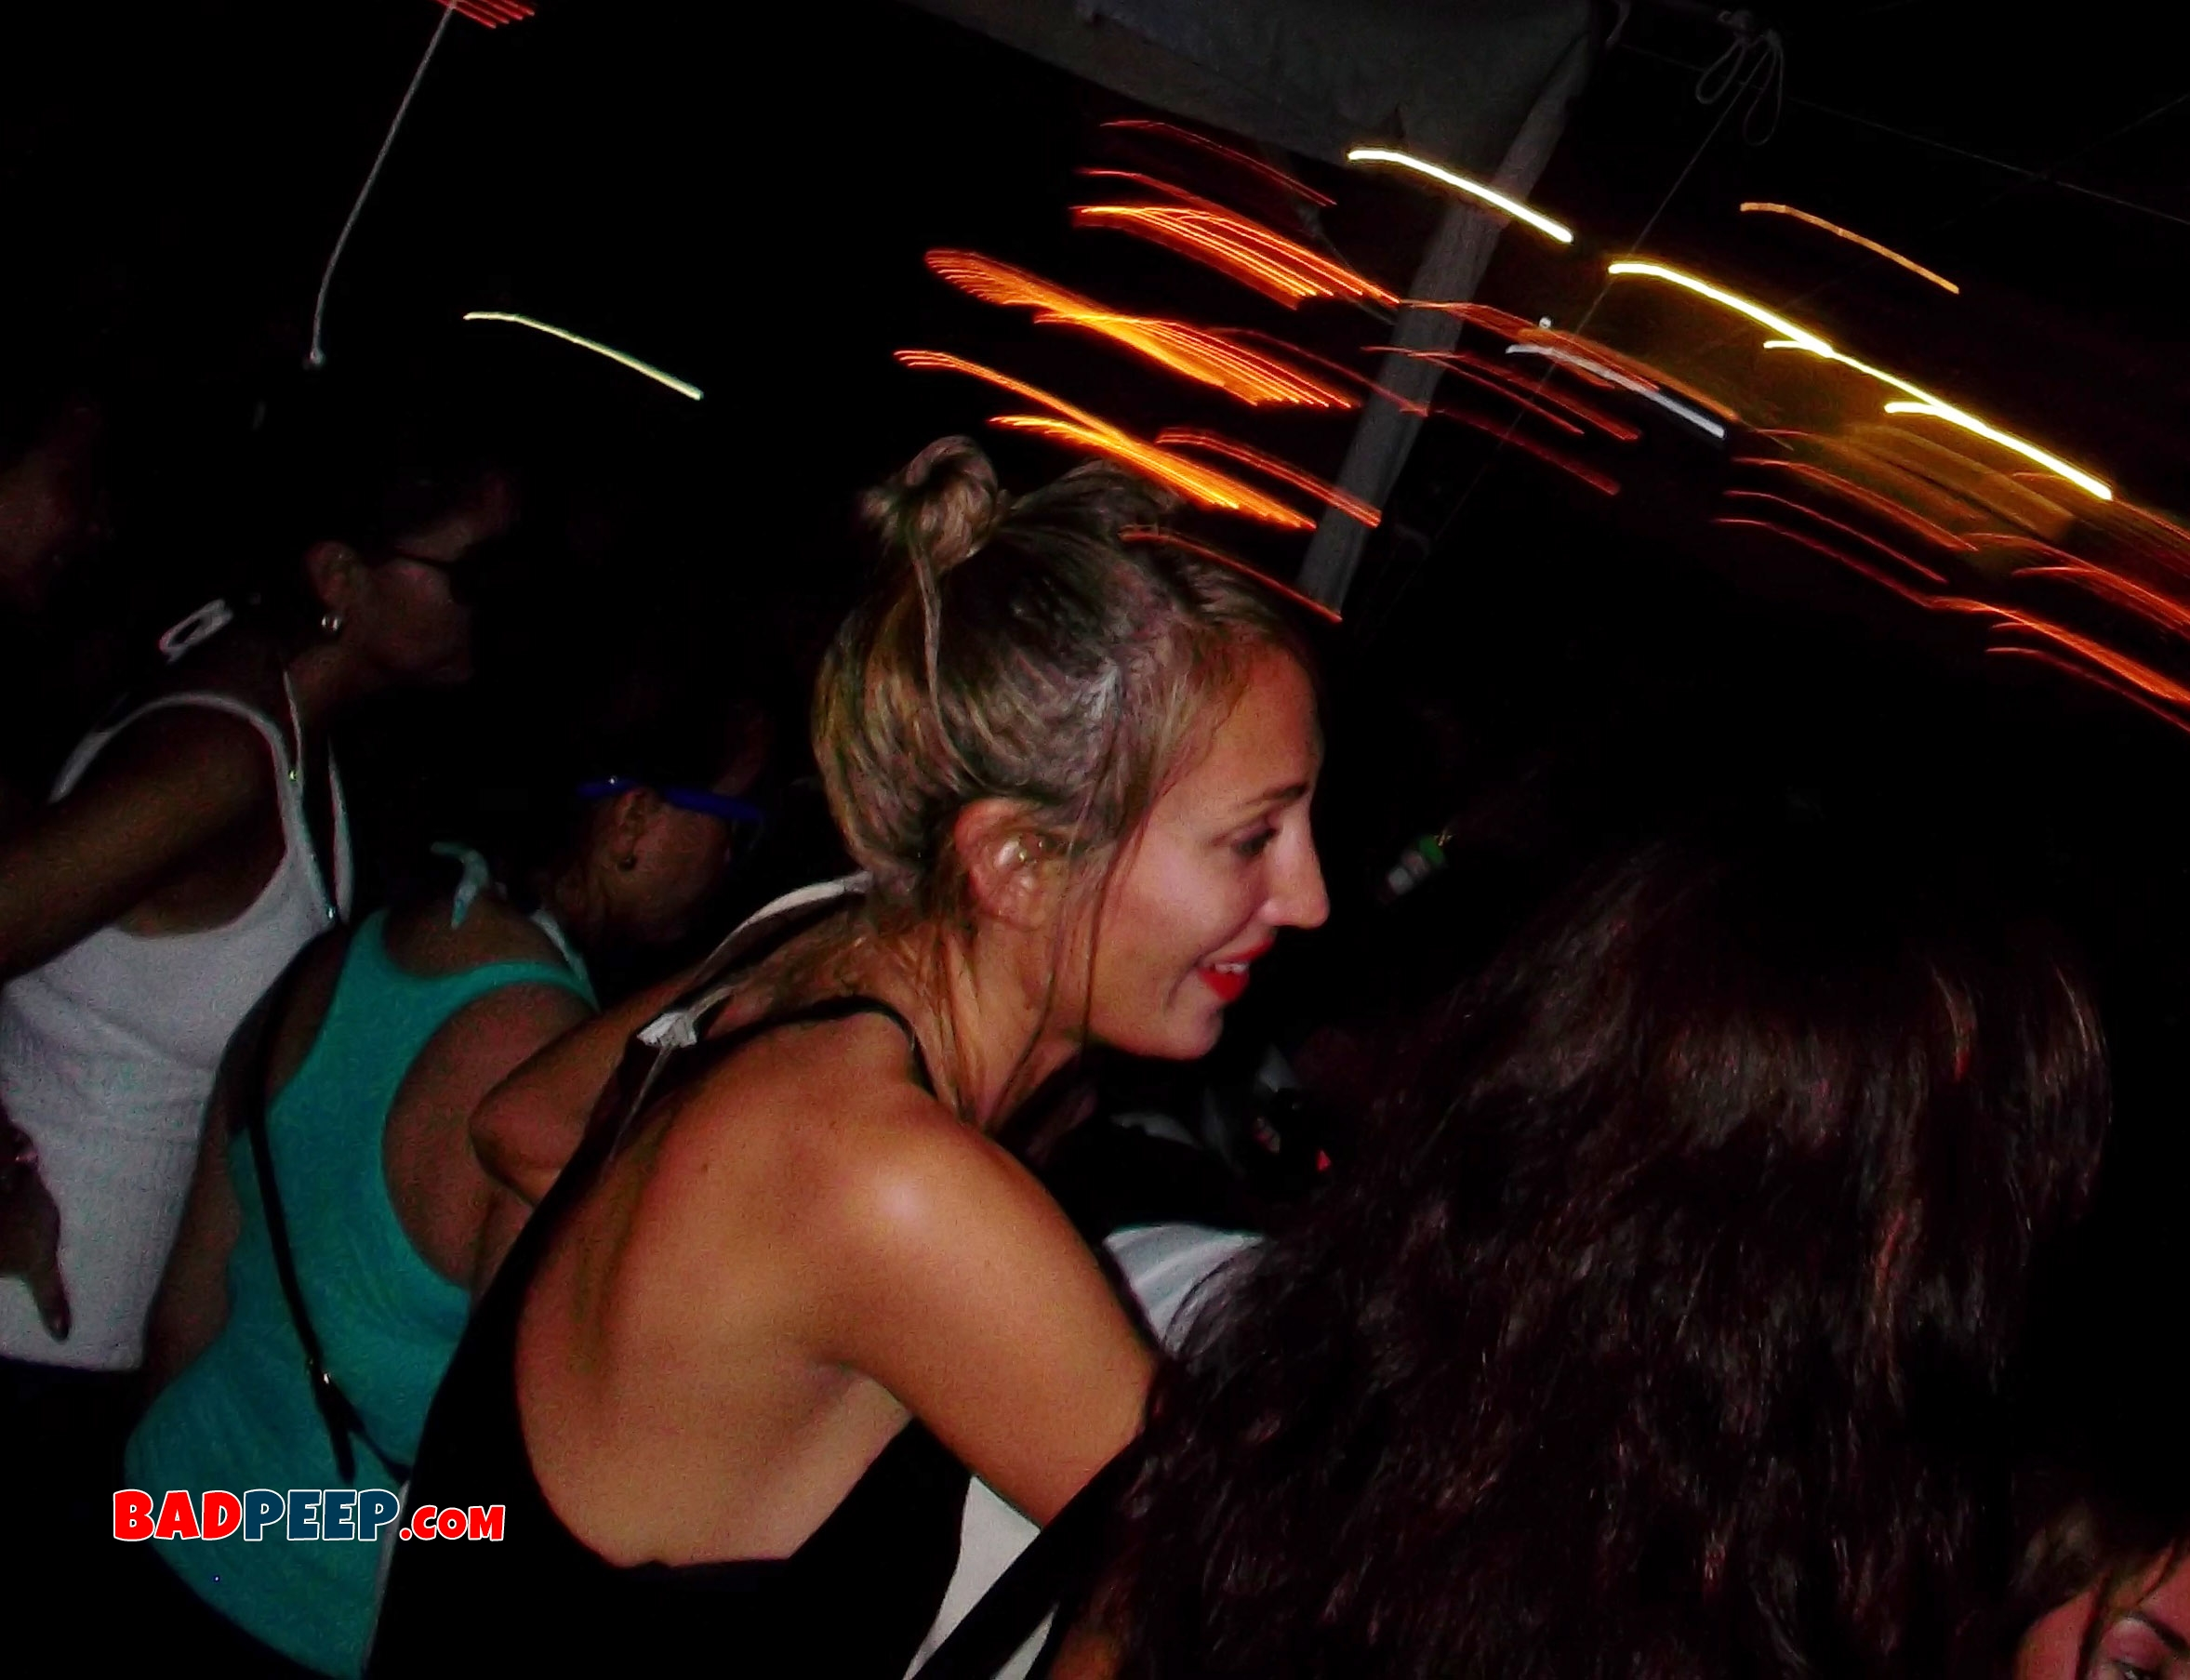 Smiling girl in crowded nightclub